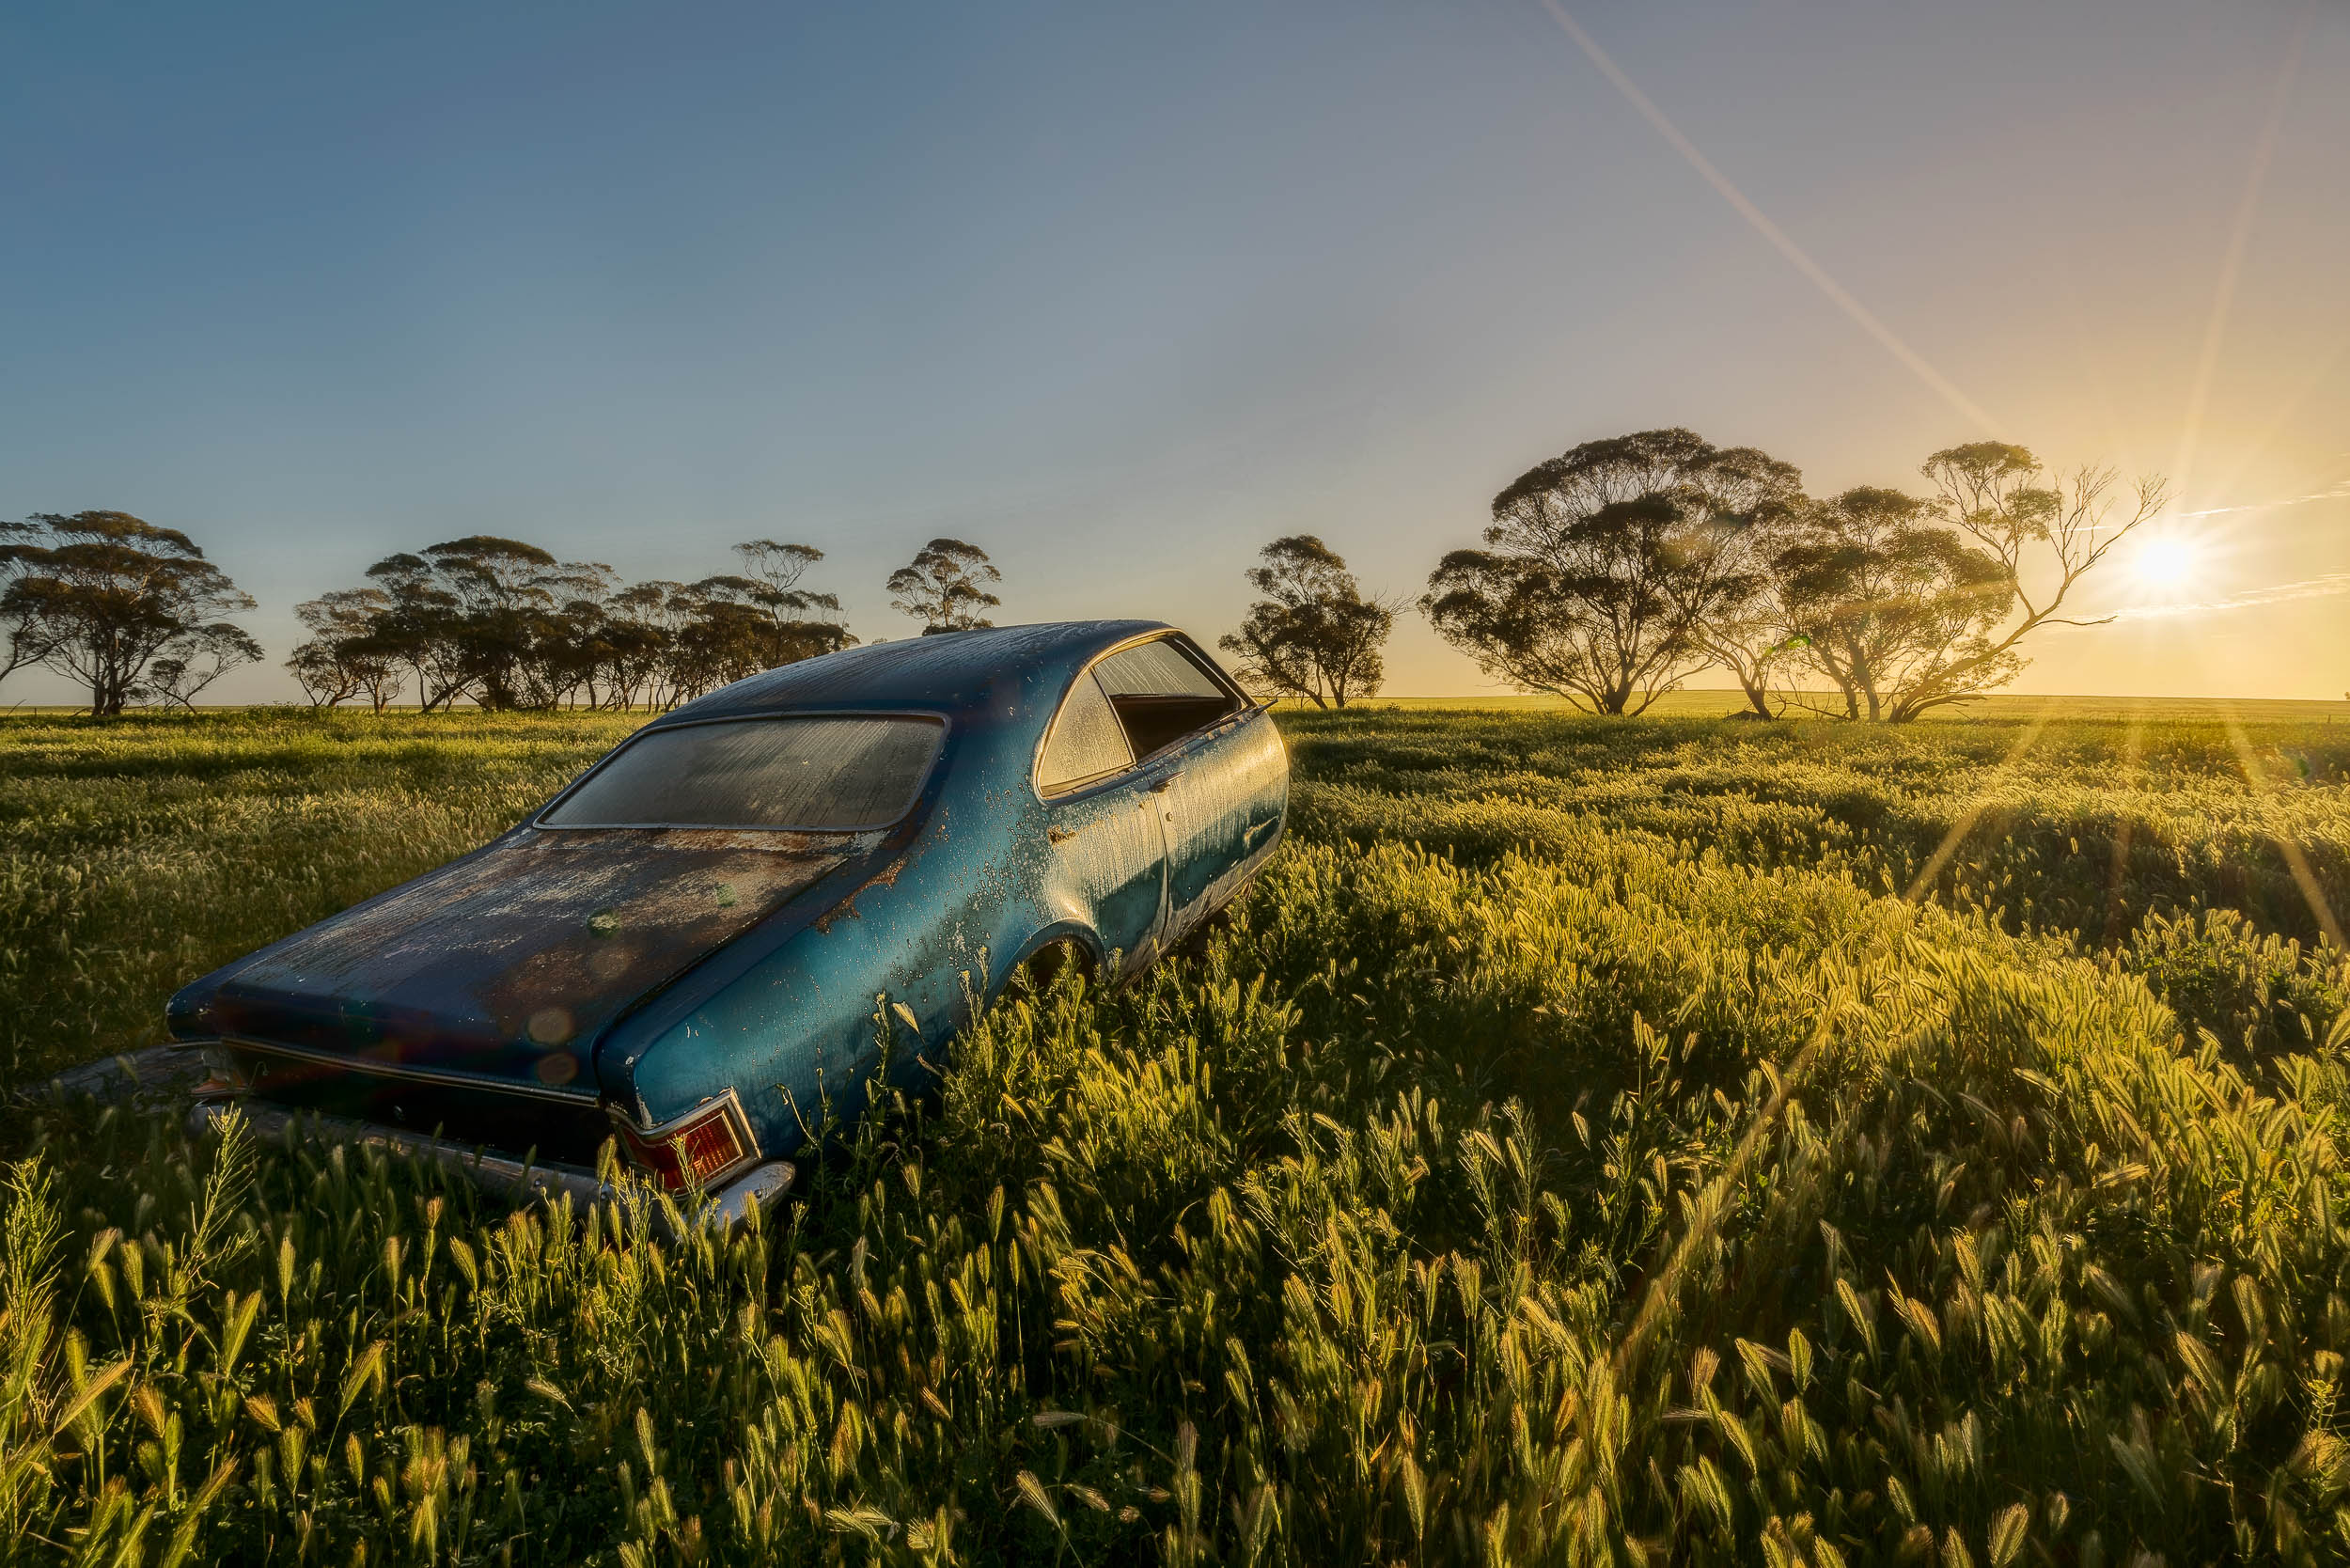 The remains of an  old car  in a field at  sunrise  in the  Mallee  region of  Australia .